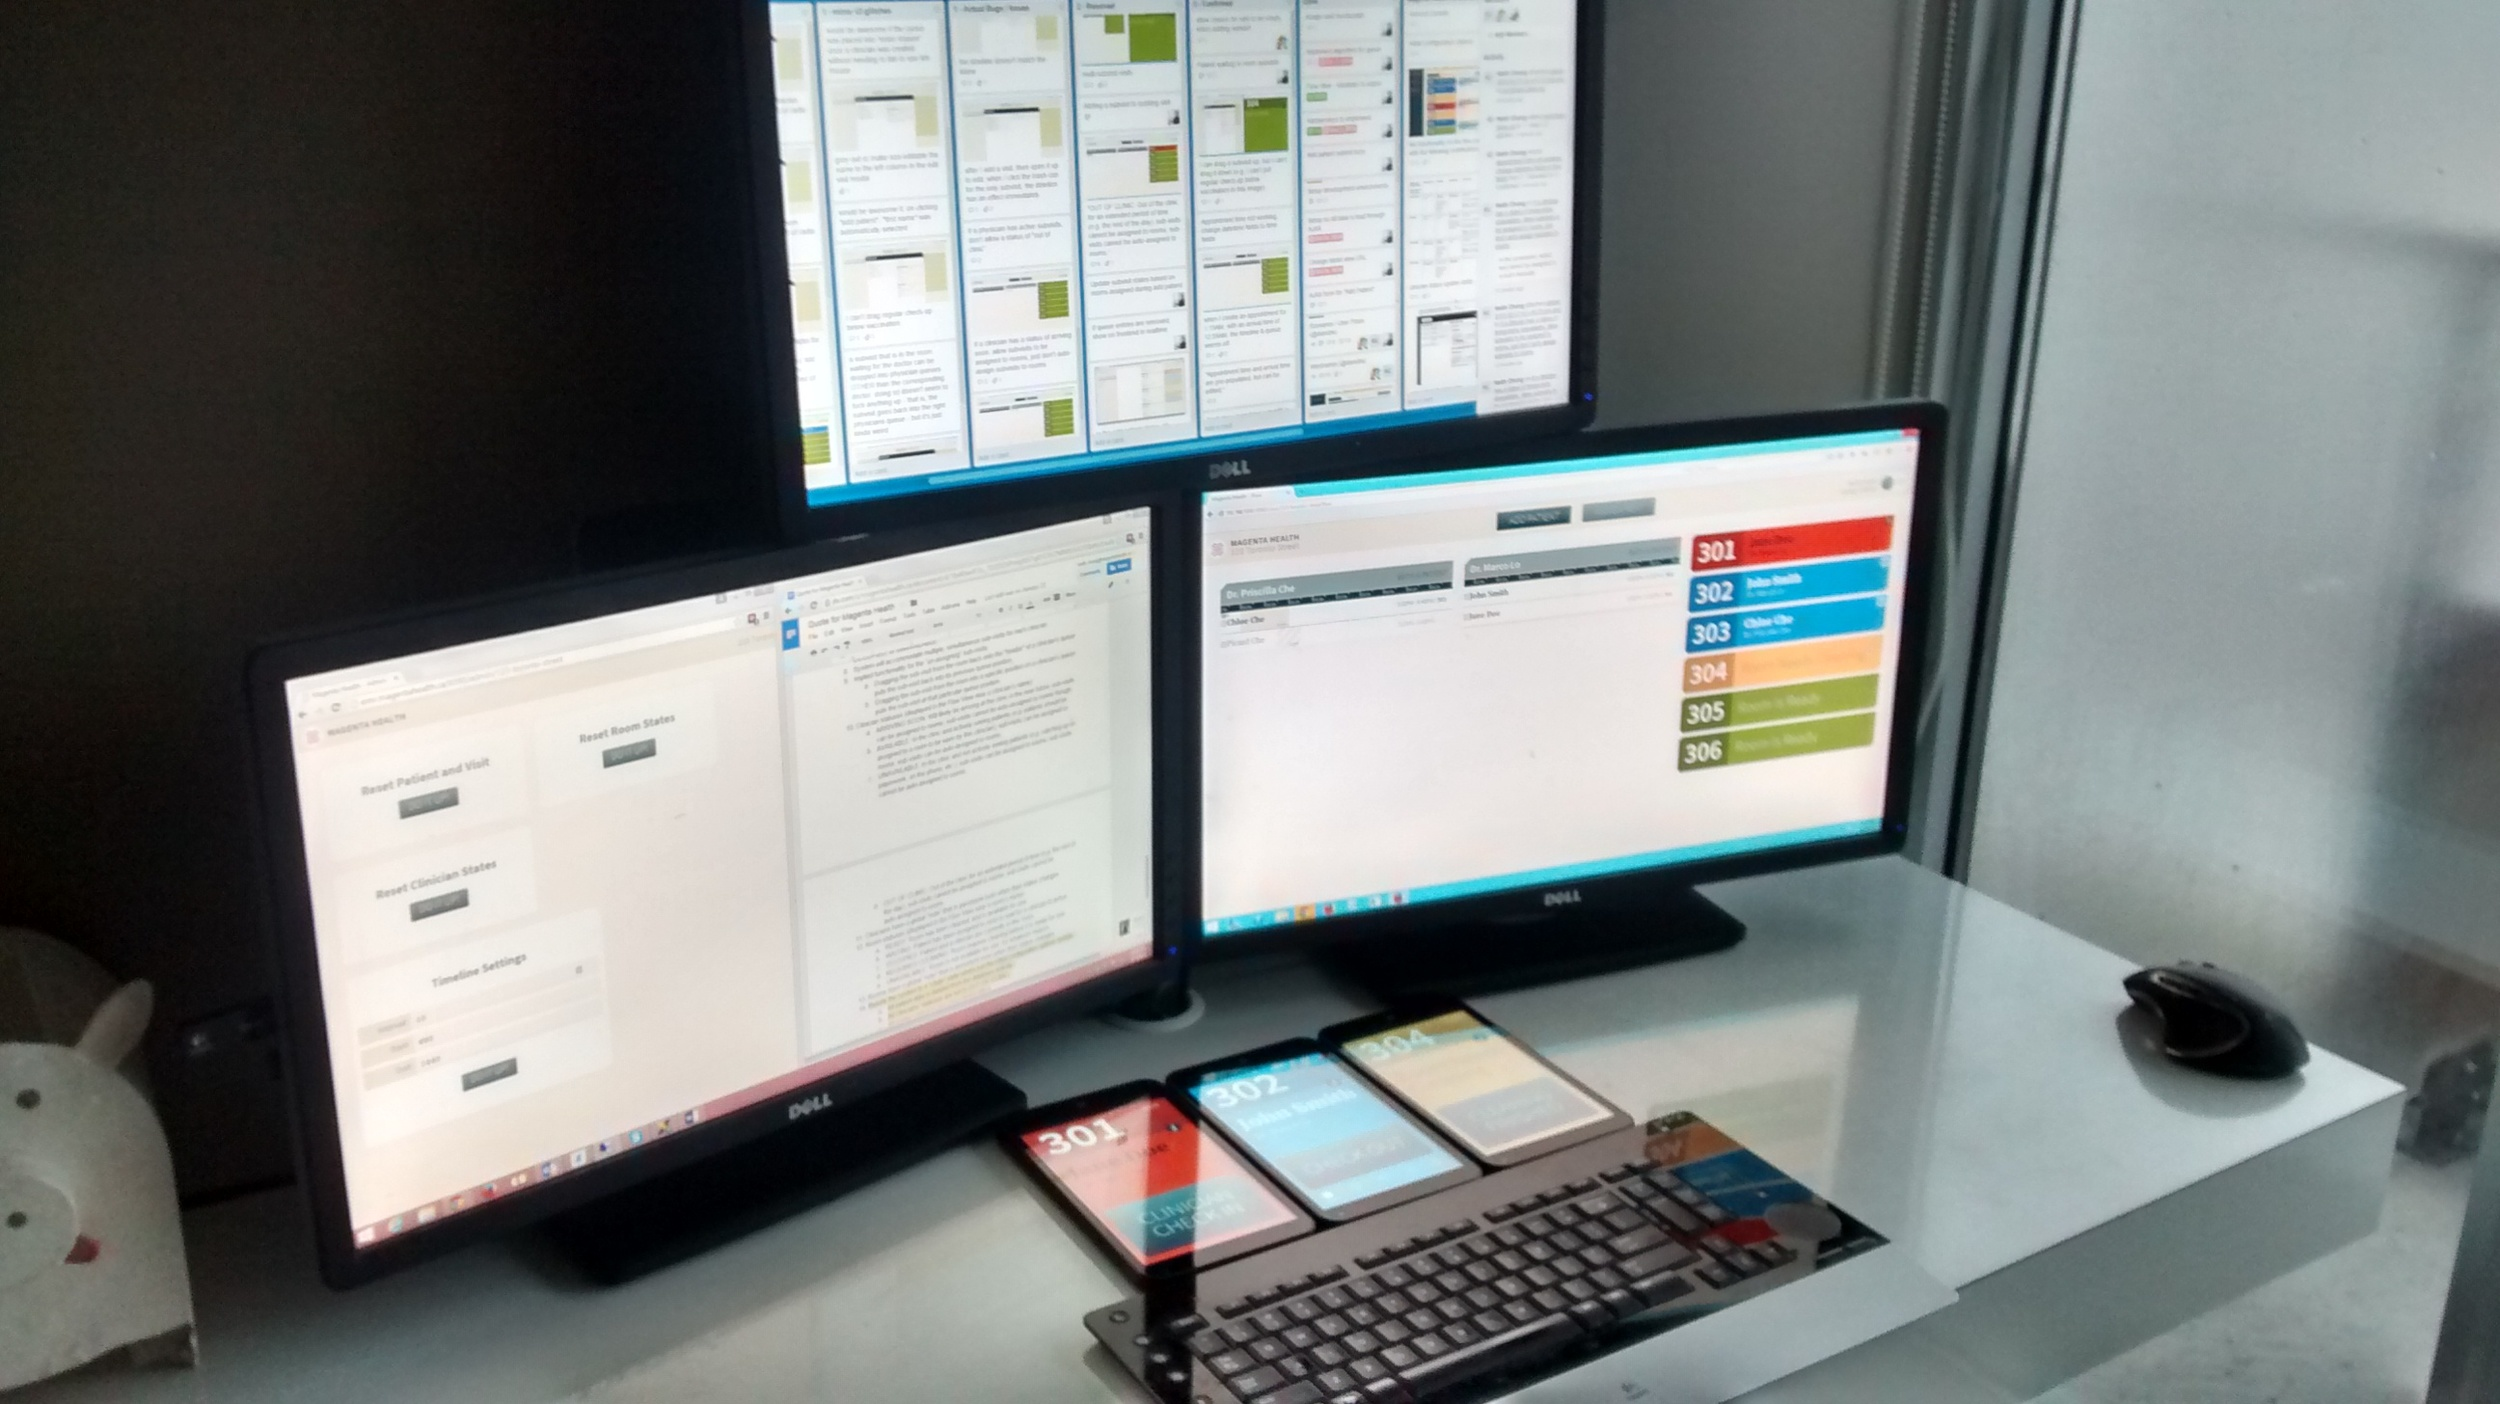 Why large  multiple monitors  are so important for working effectively.